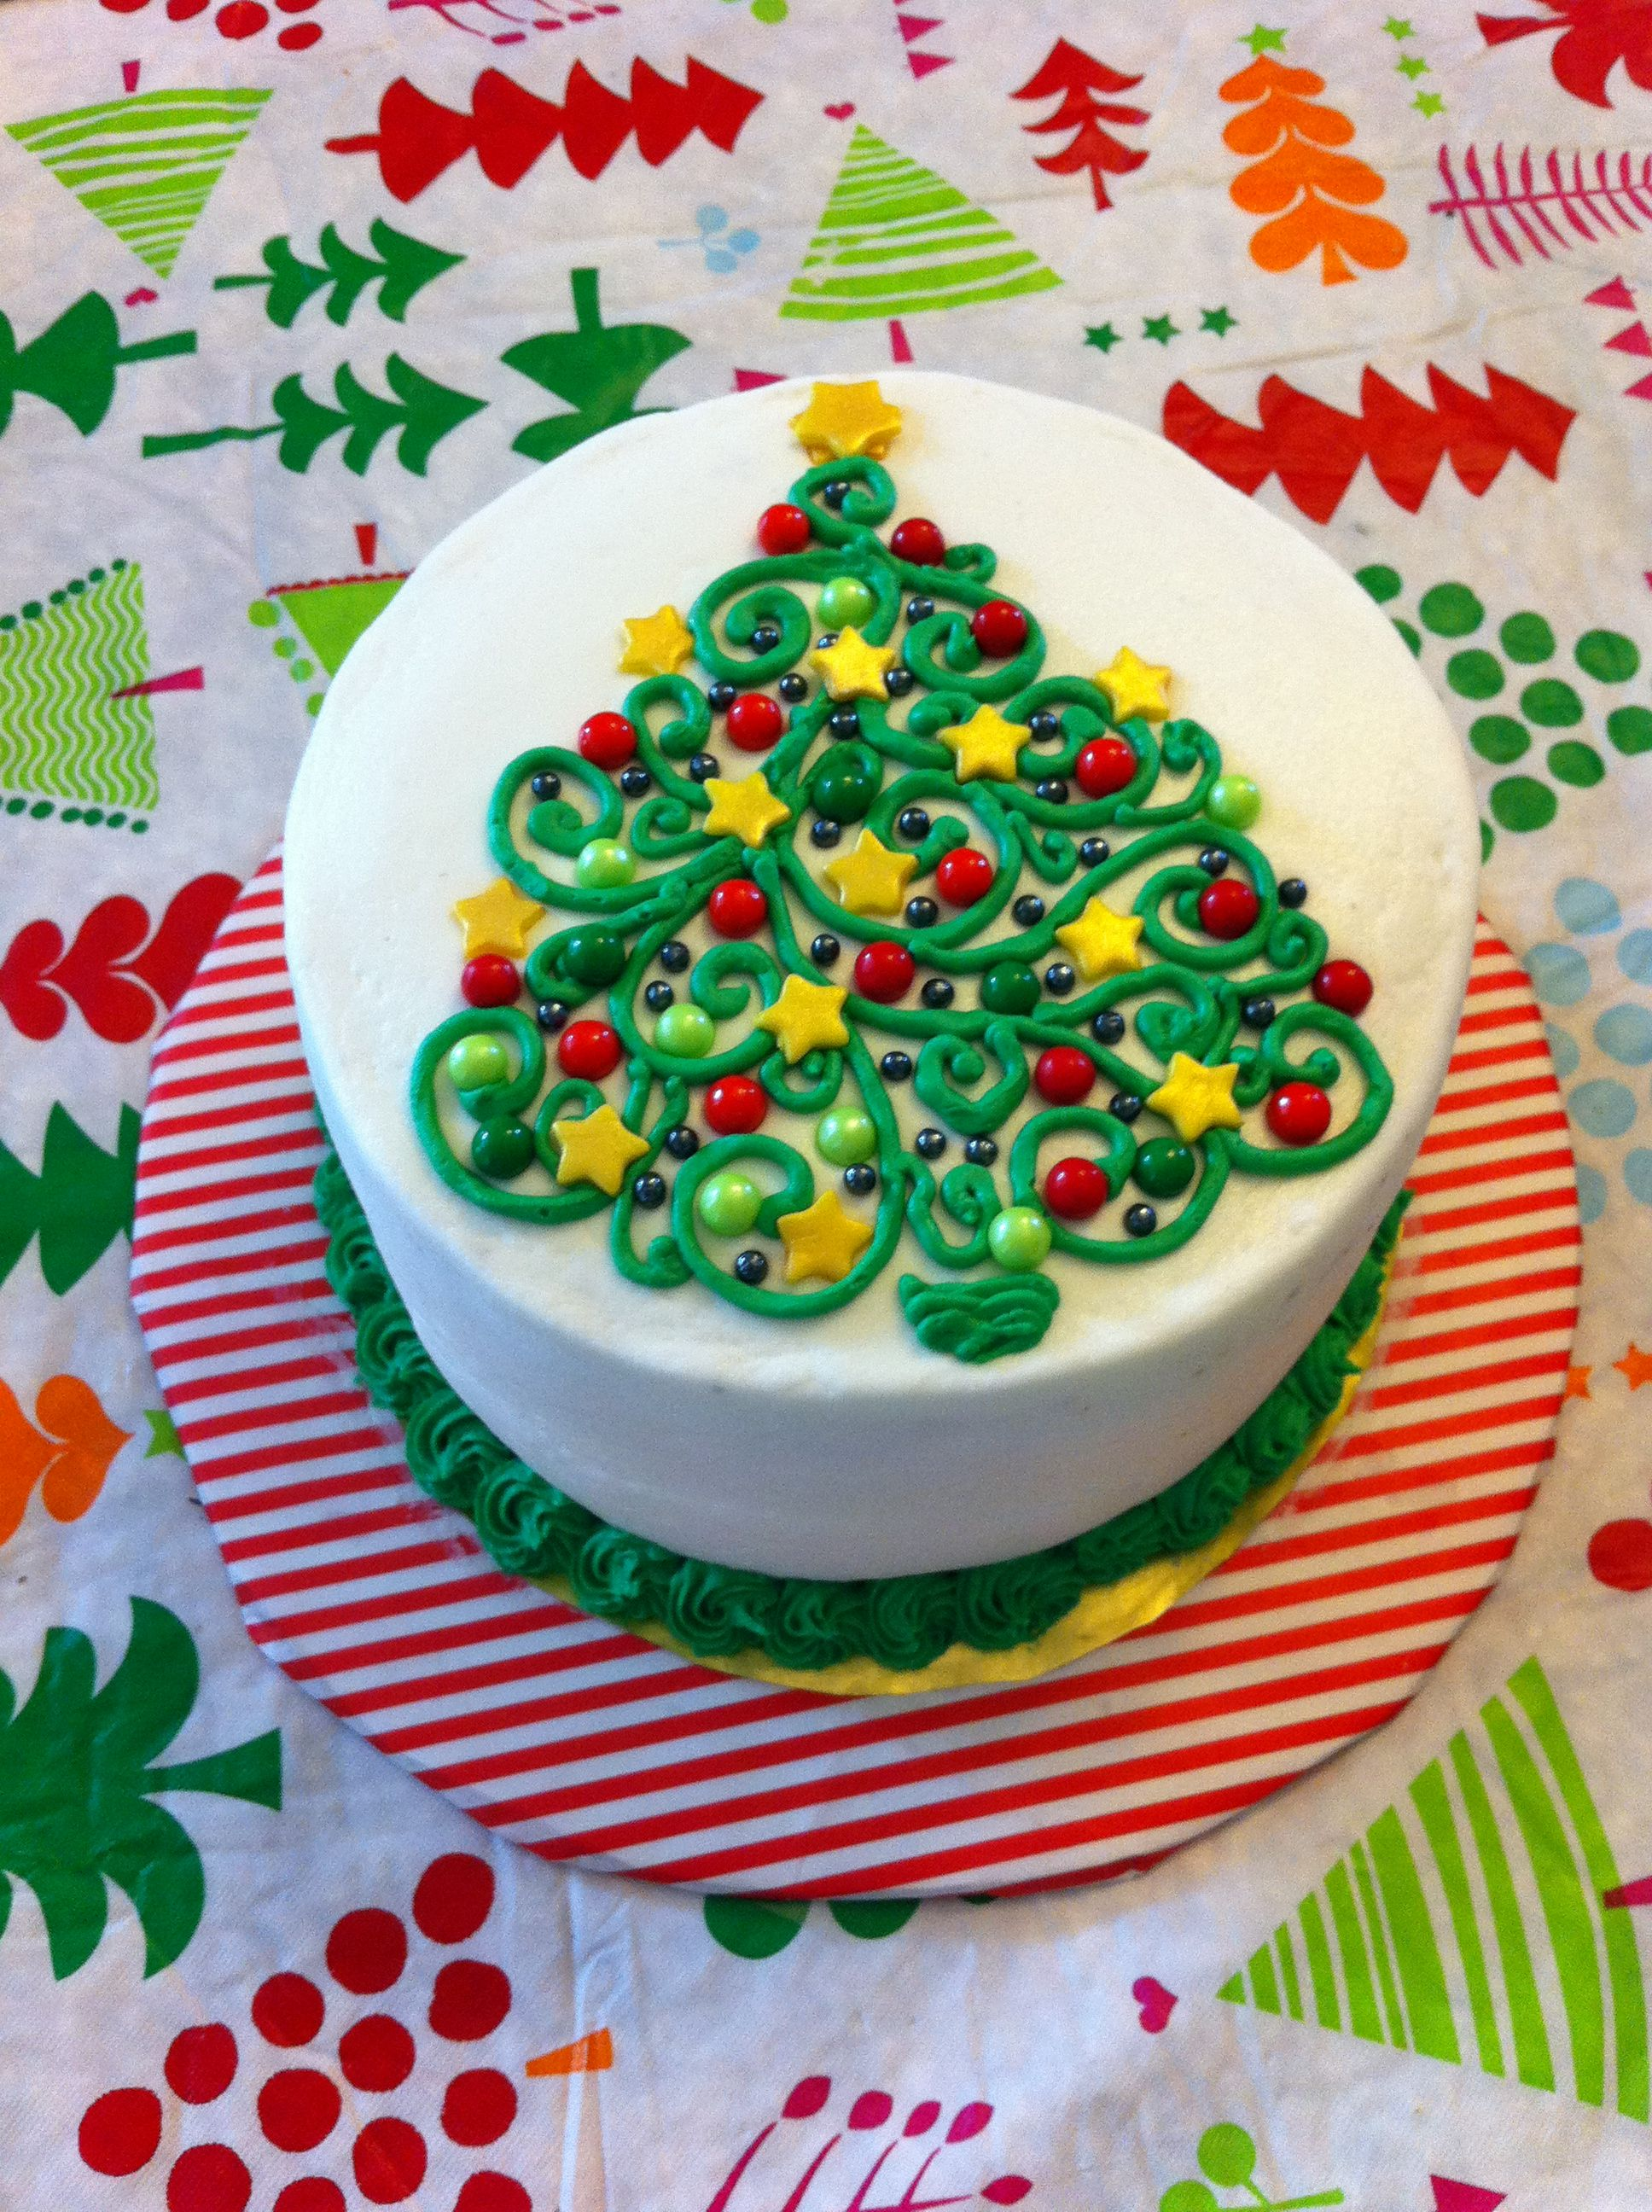 Swirly Christmas Tree cake Swirly Christmas tree